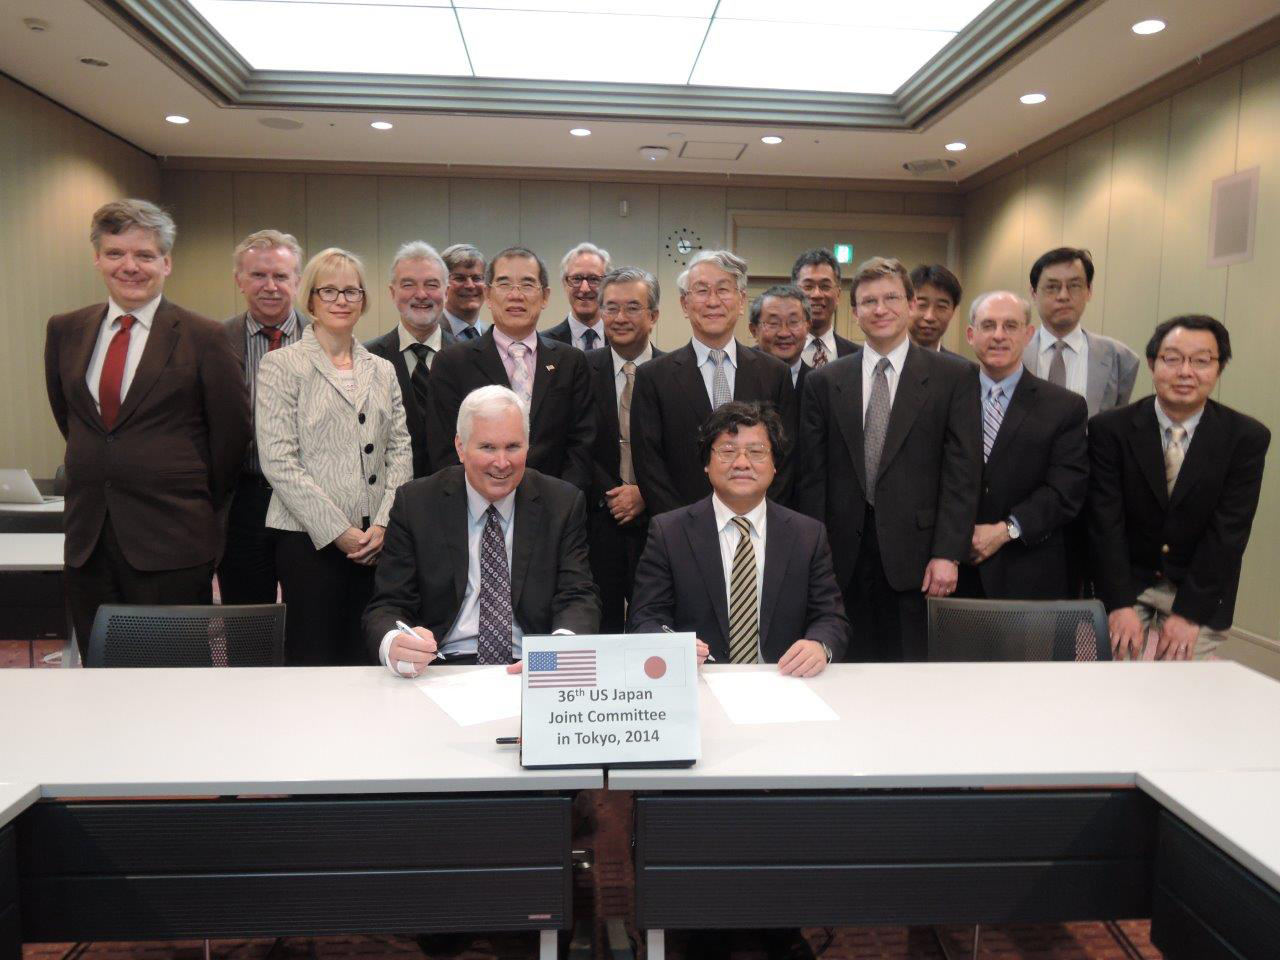 On April 25 in Tokyo, DOE Associate Director for High-Energy Physics Jim Siegrist (seated, left) and KEK Executive Director Yasuhiro Okada (seated, right) signed an agreement on the U.S.-Japan collaboration in high-energy physics. The agreement as it relates to Fermilab covers advanced accelerator technology, including for a linear collider, and the development of advanced technology for neutrino experiments with high-power beams. Photo: KEK